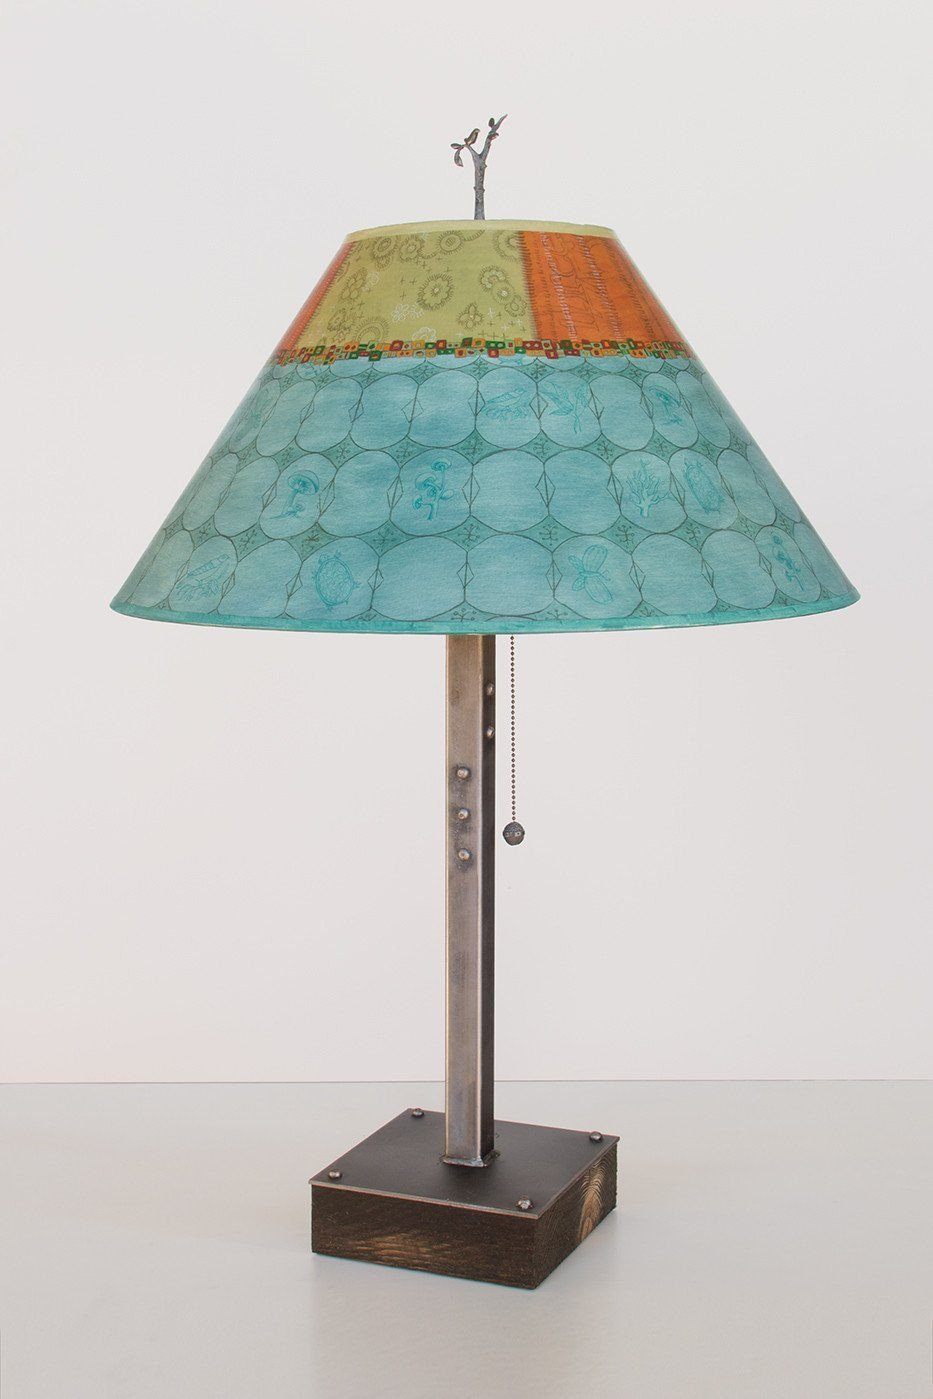 Steel Table Lamp on Wood with Large Conical Shade in Paradise Pool